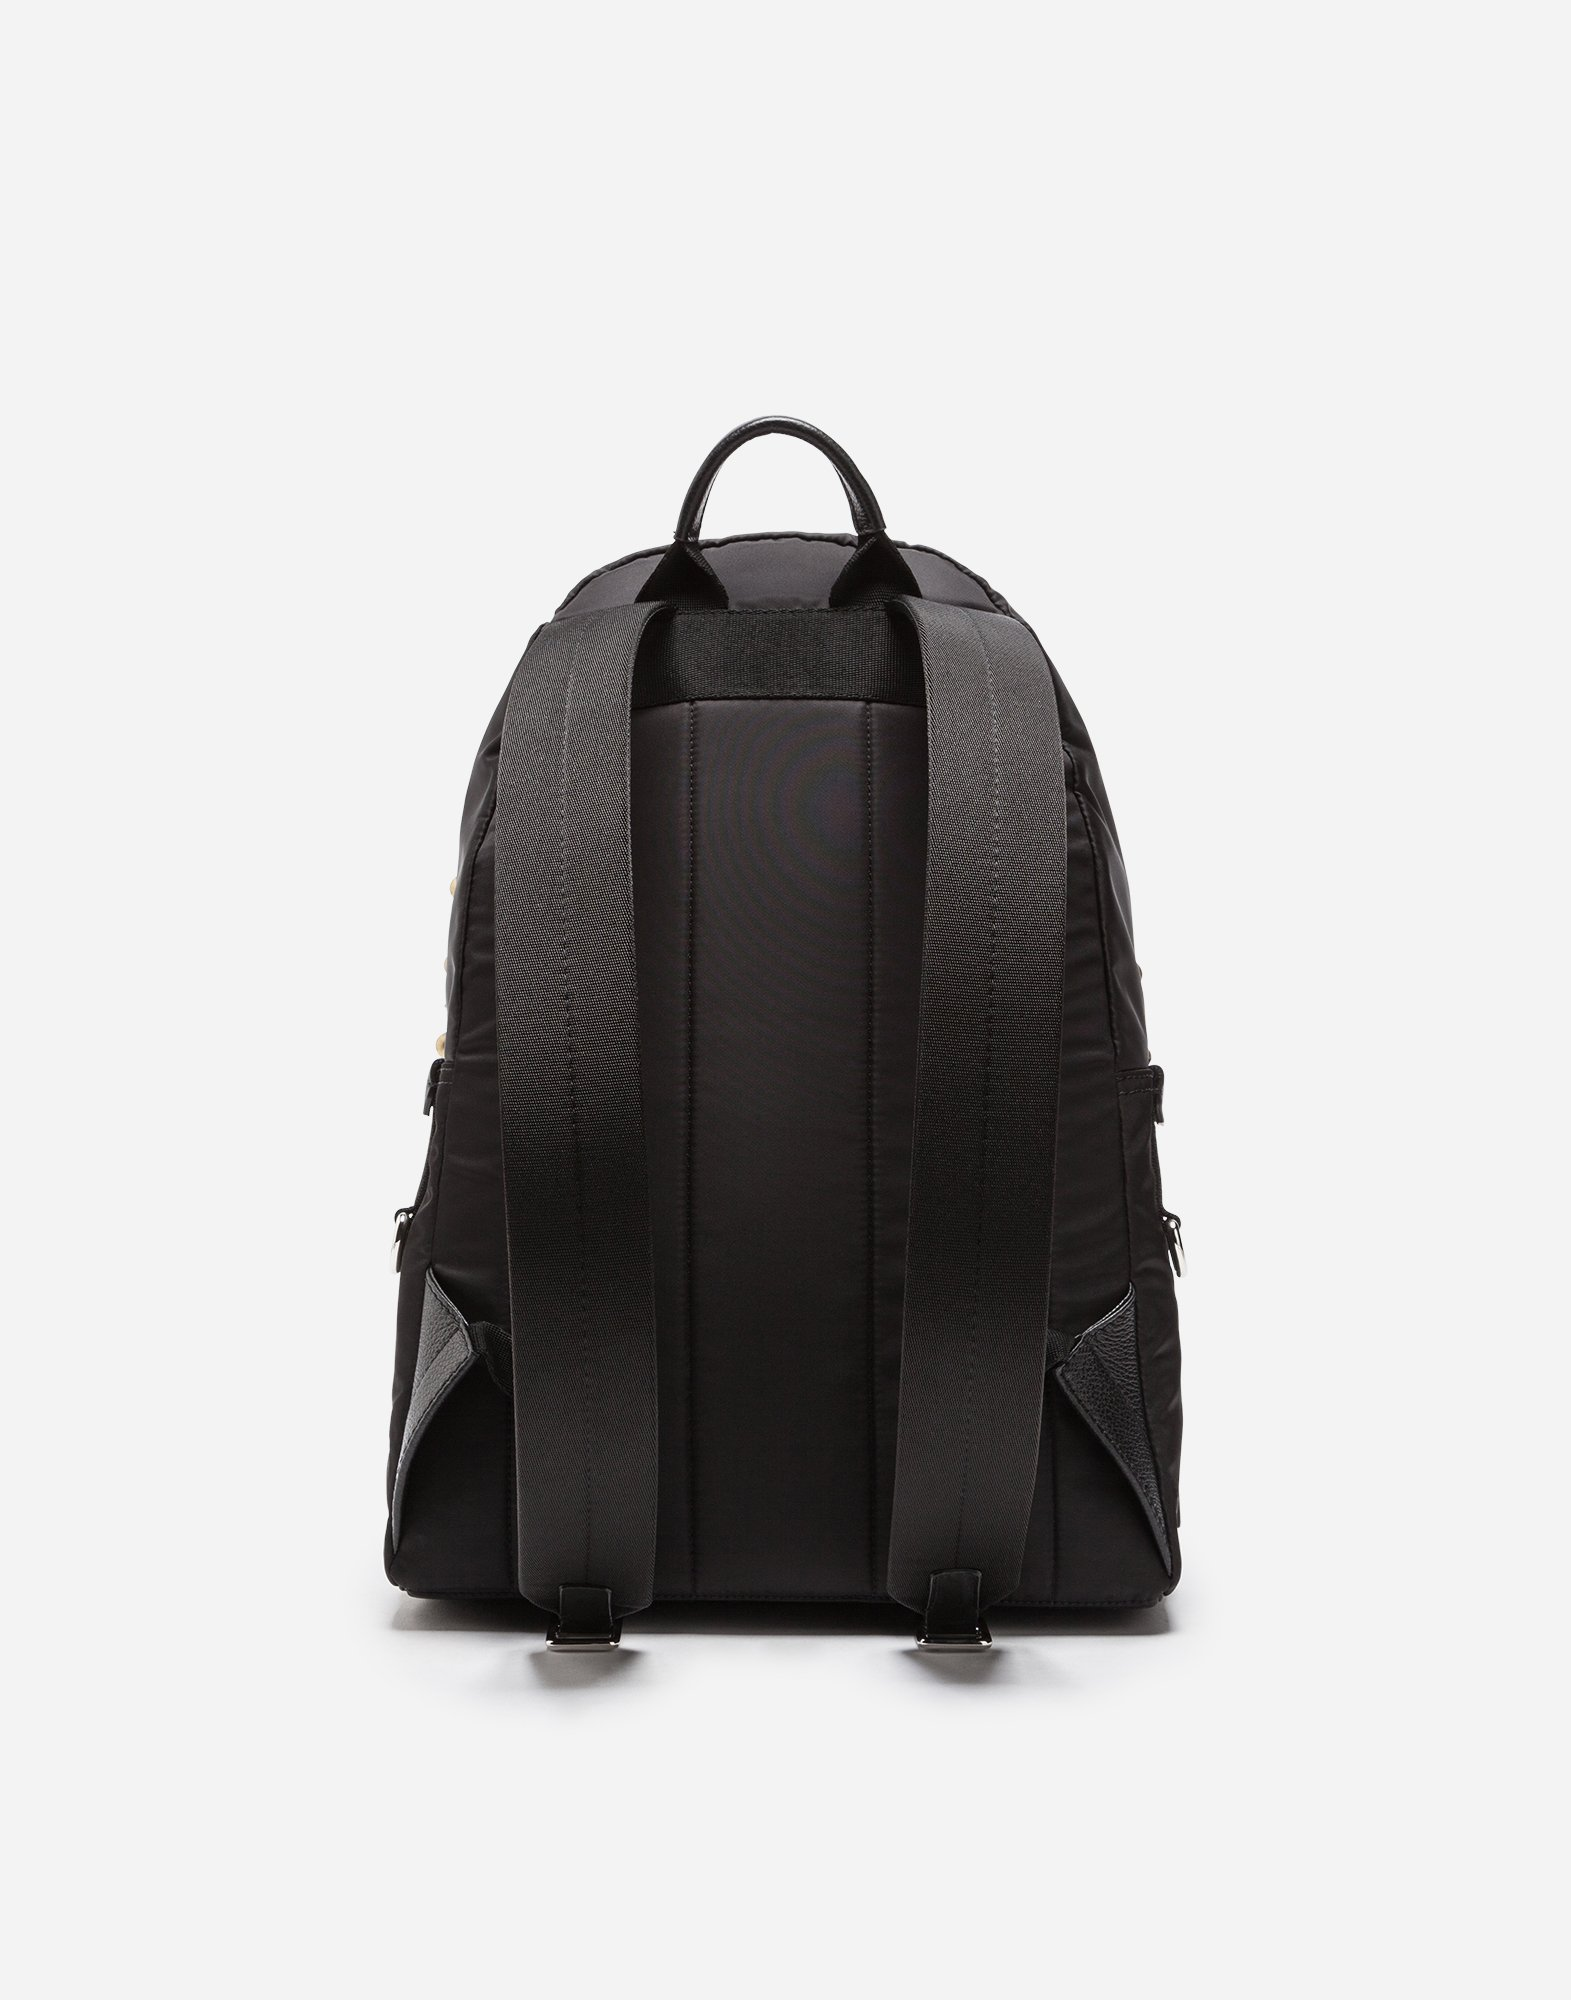 Dolce & Gabbana NYLON VULCANO BACKPACK WITH HEART PATCH